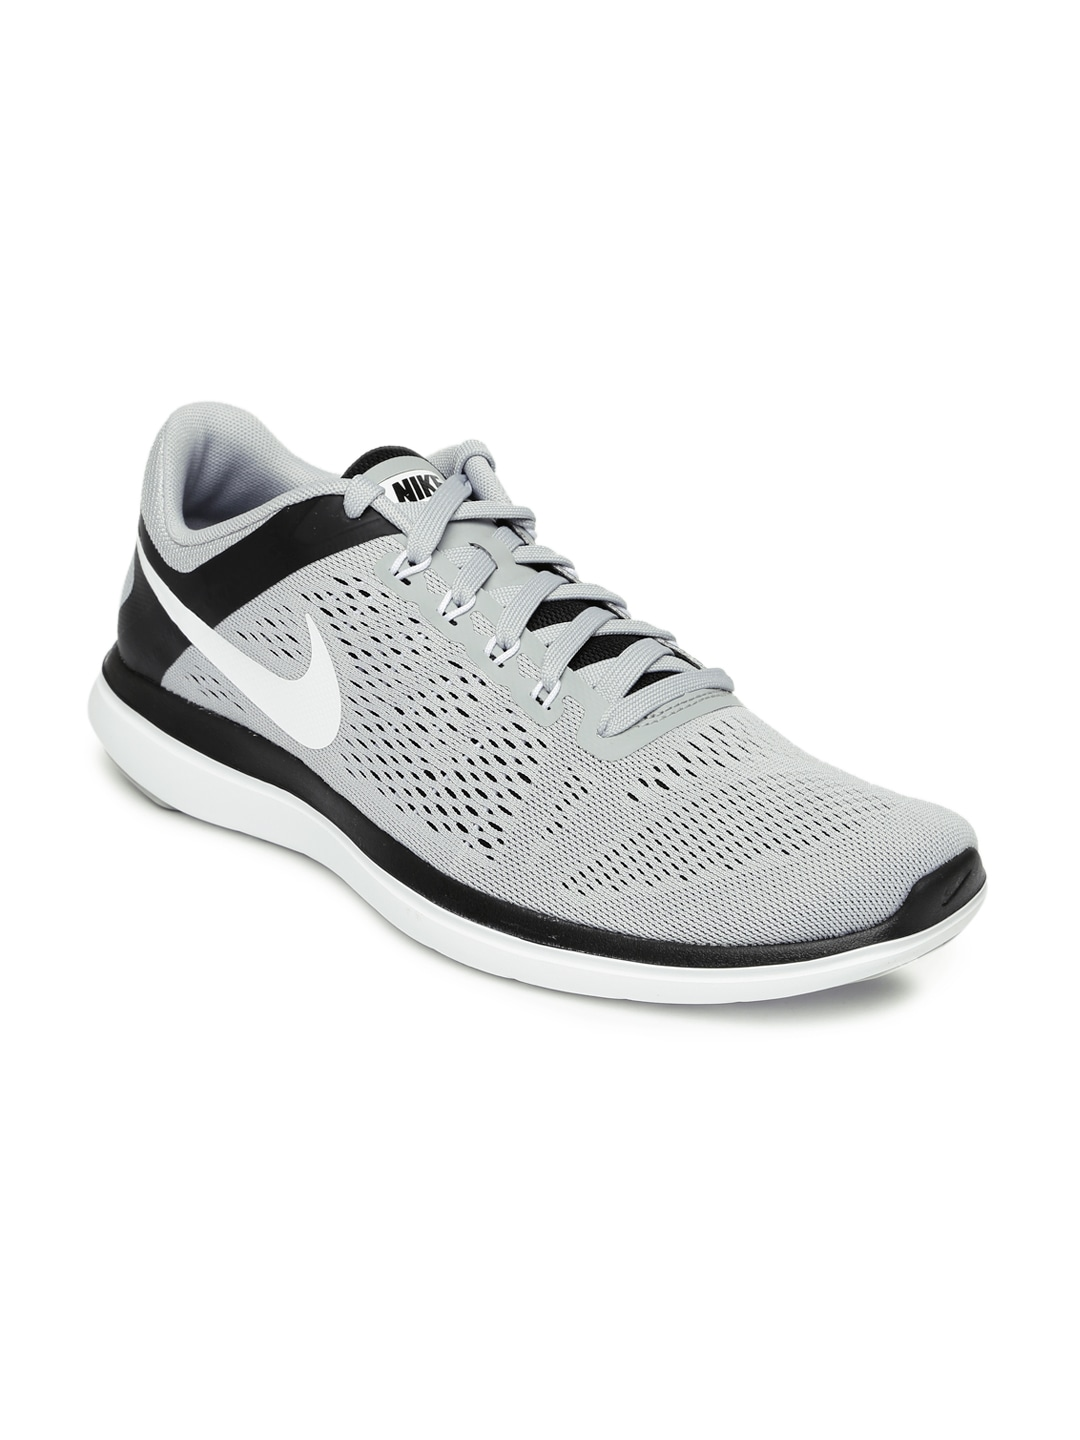 Nike Mens Shoes Online Shopping In India